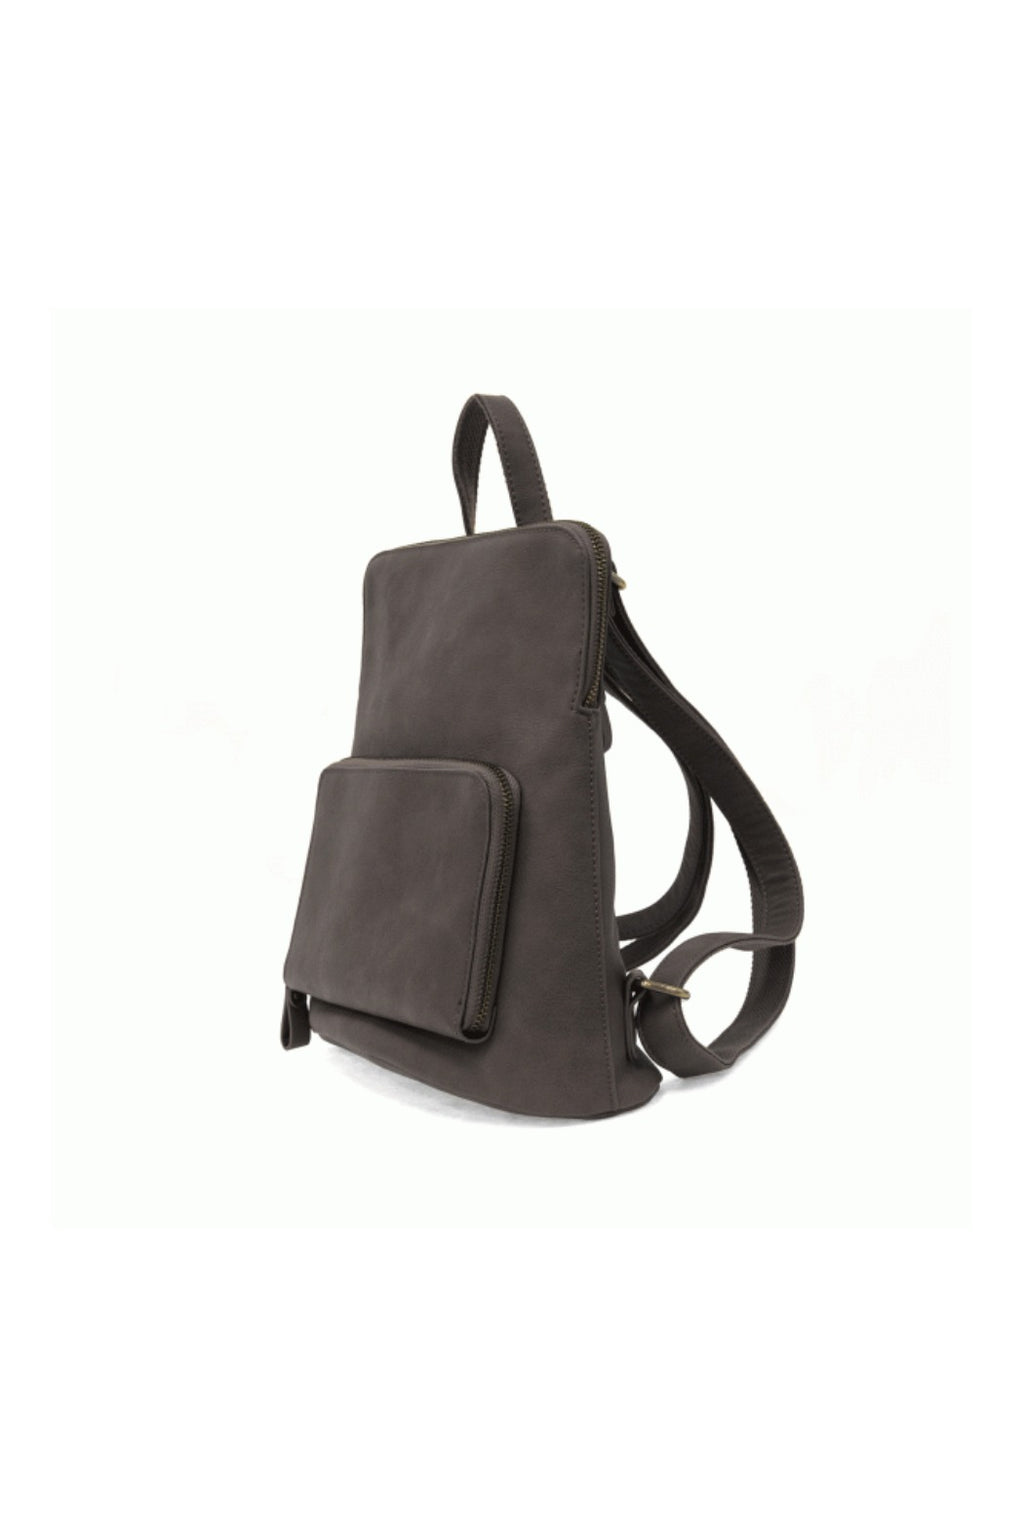 Joy Susan Julia Mini Backpack - Charcoal